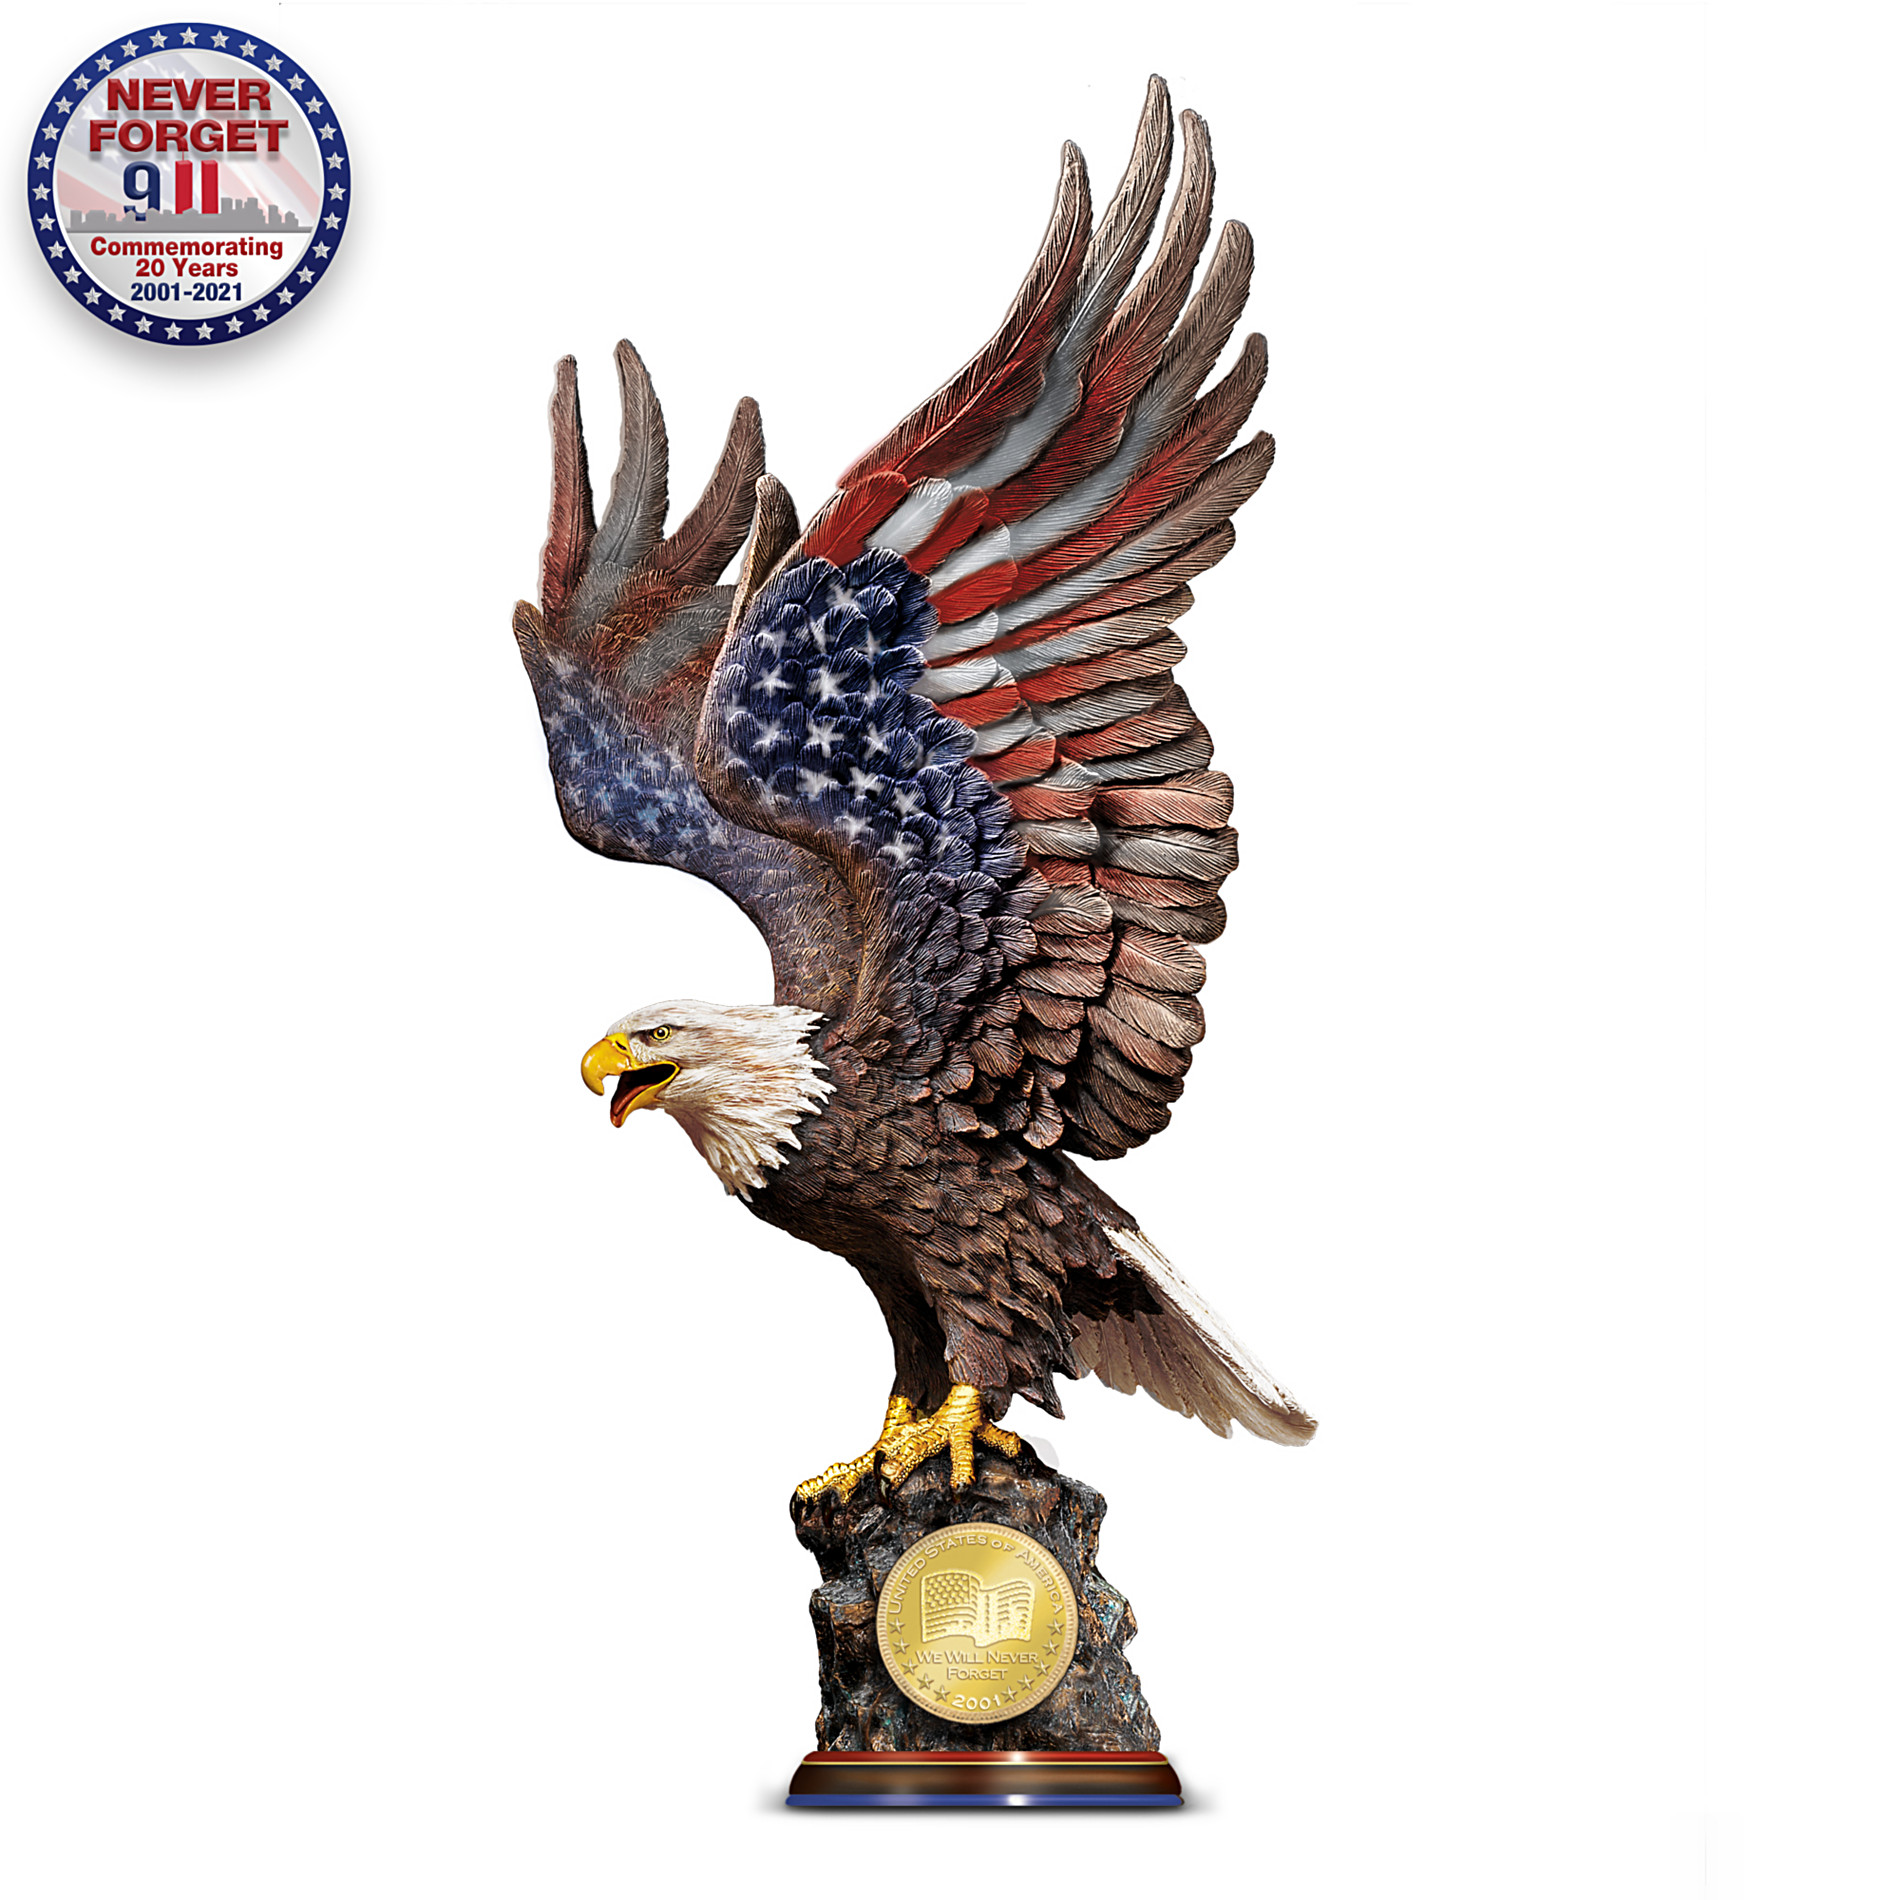 The Bradford Exchange We Will Never Forget: Patriotic Eagle Sculpture Commemorating 9/11/2001 at Sears.com